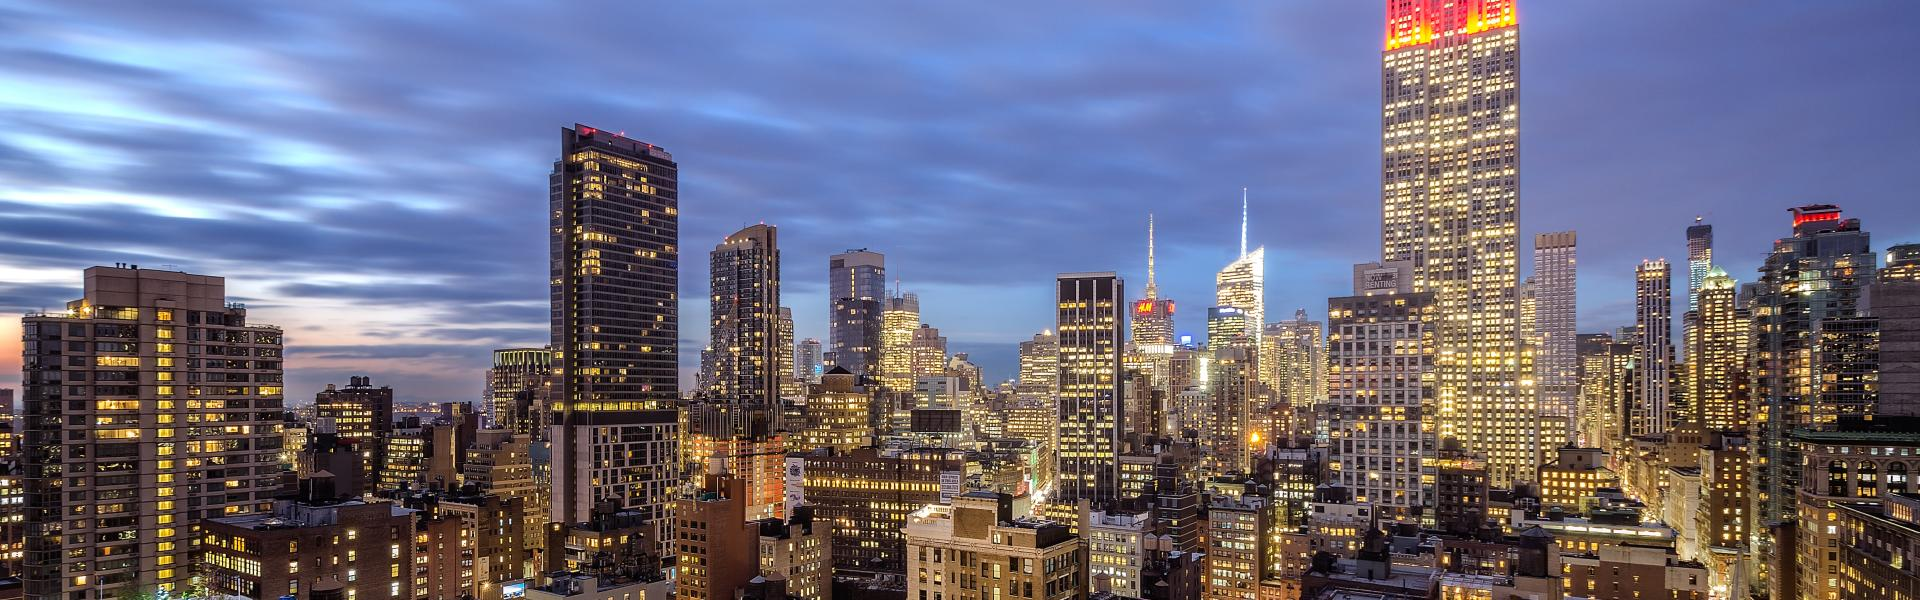 230 Fifth Rooftop, Empire State Building View, Skyline